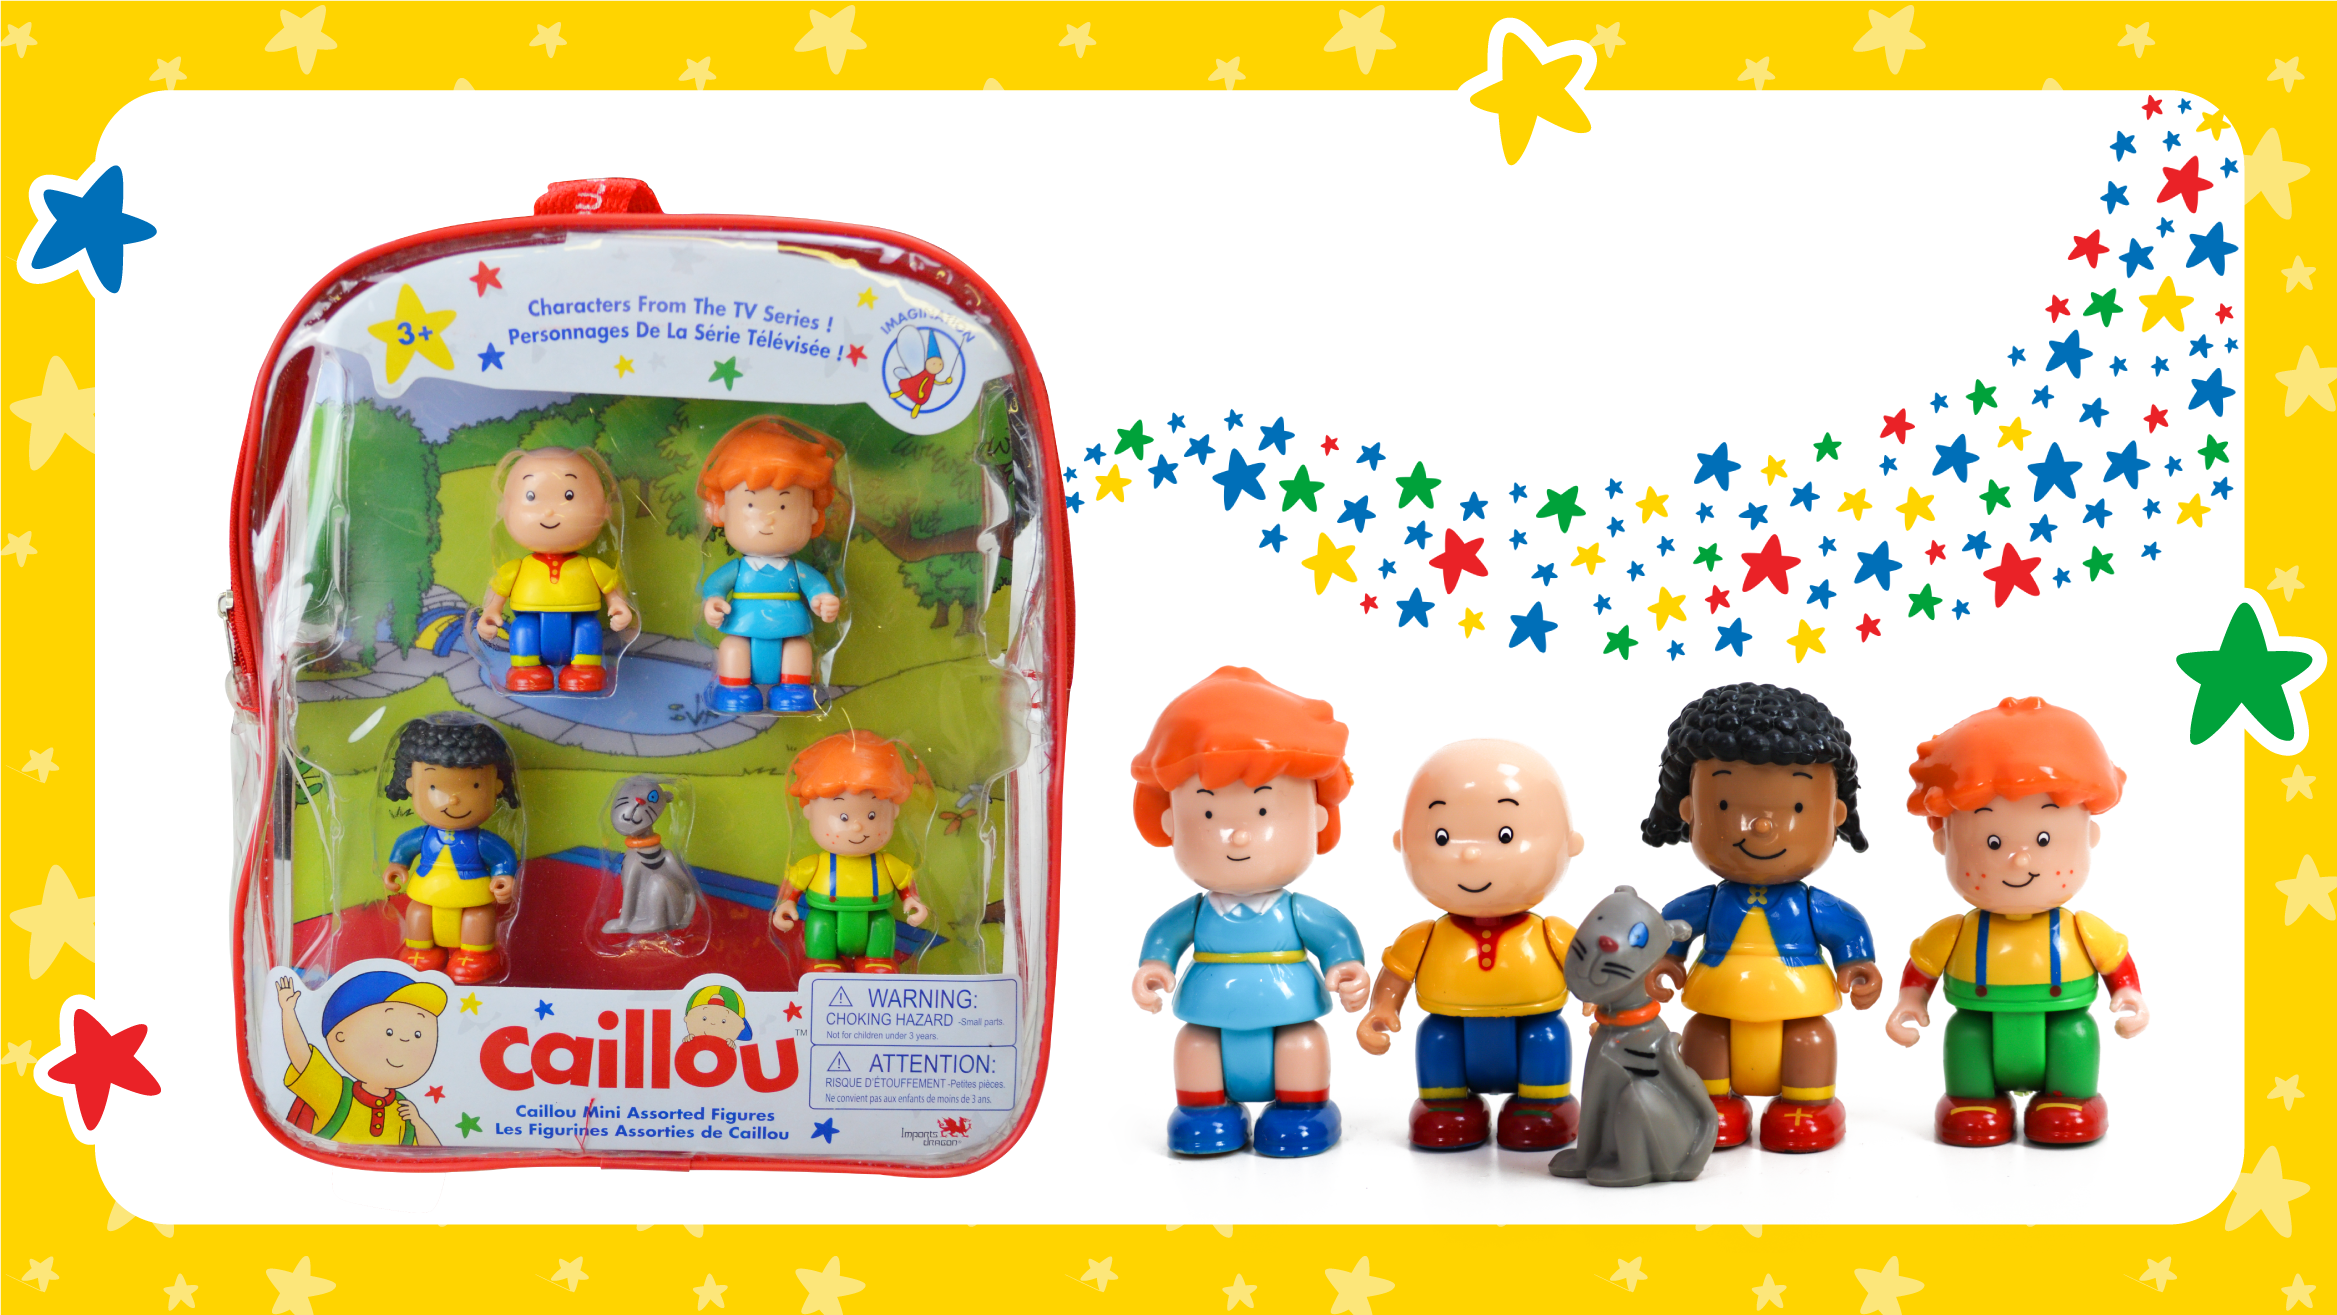 Caillou Mini Backpack with Figures Now Available in the UK! 🇬🇧 post image